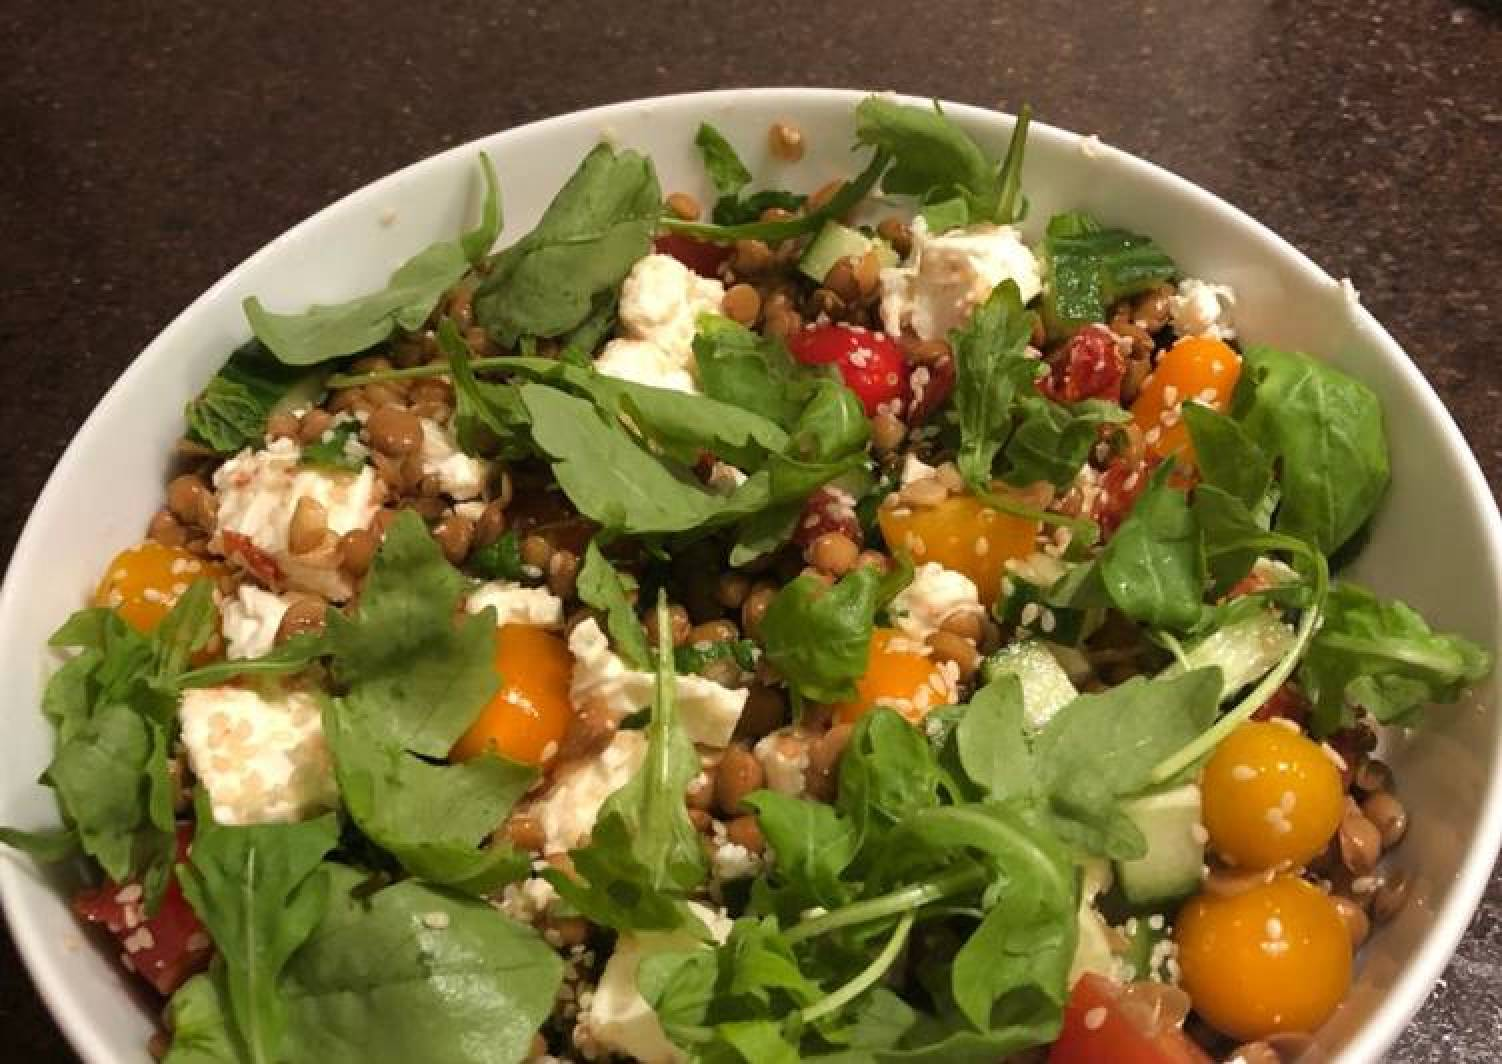 Lentil, tomato and feta salad